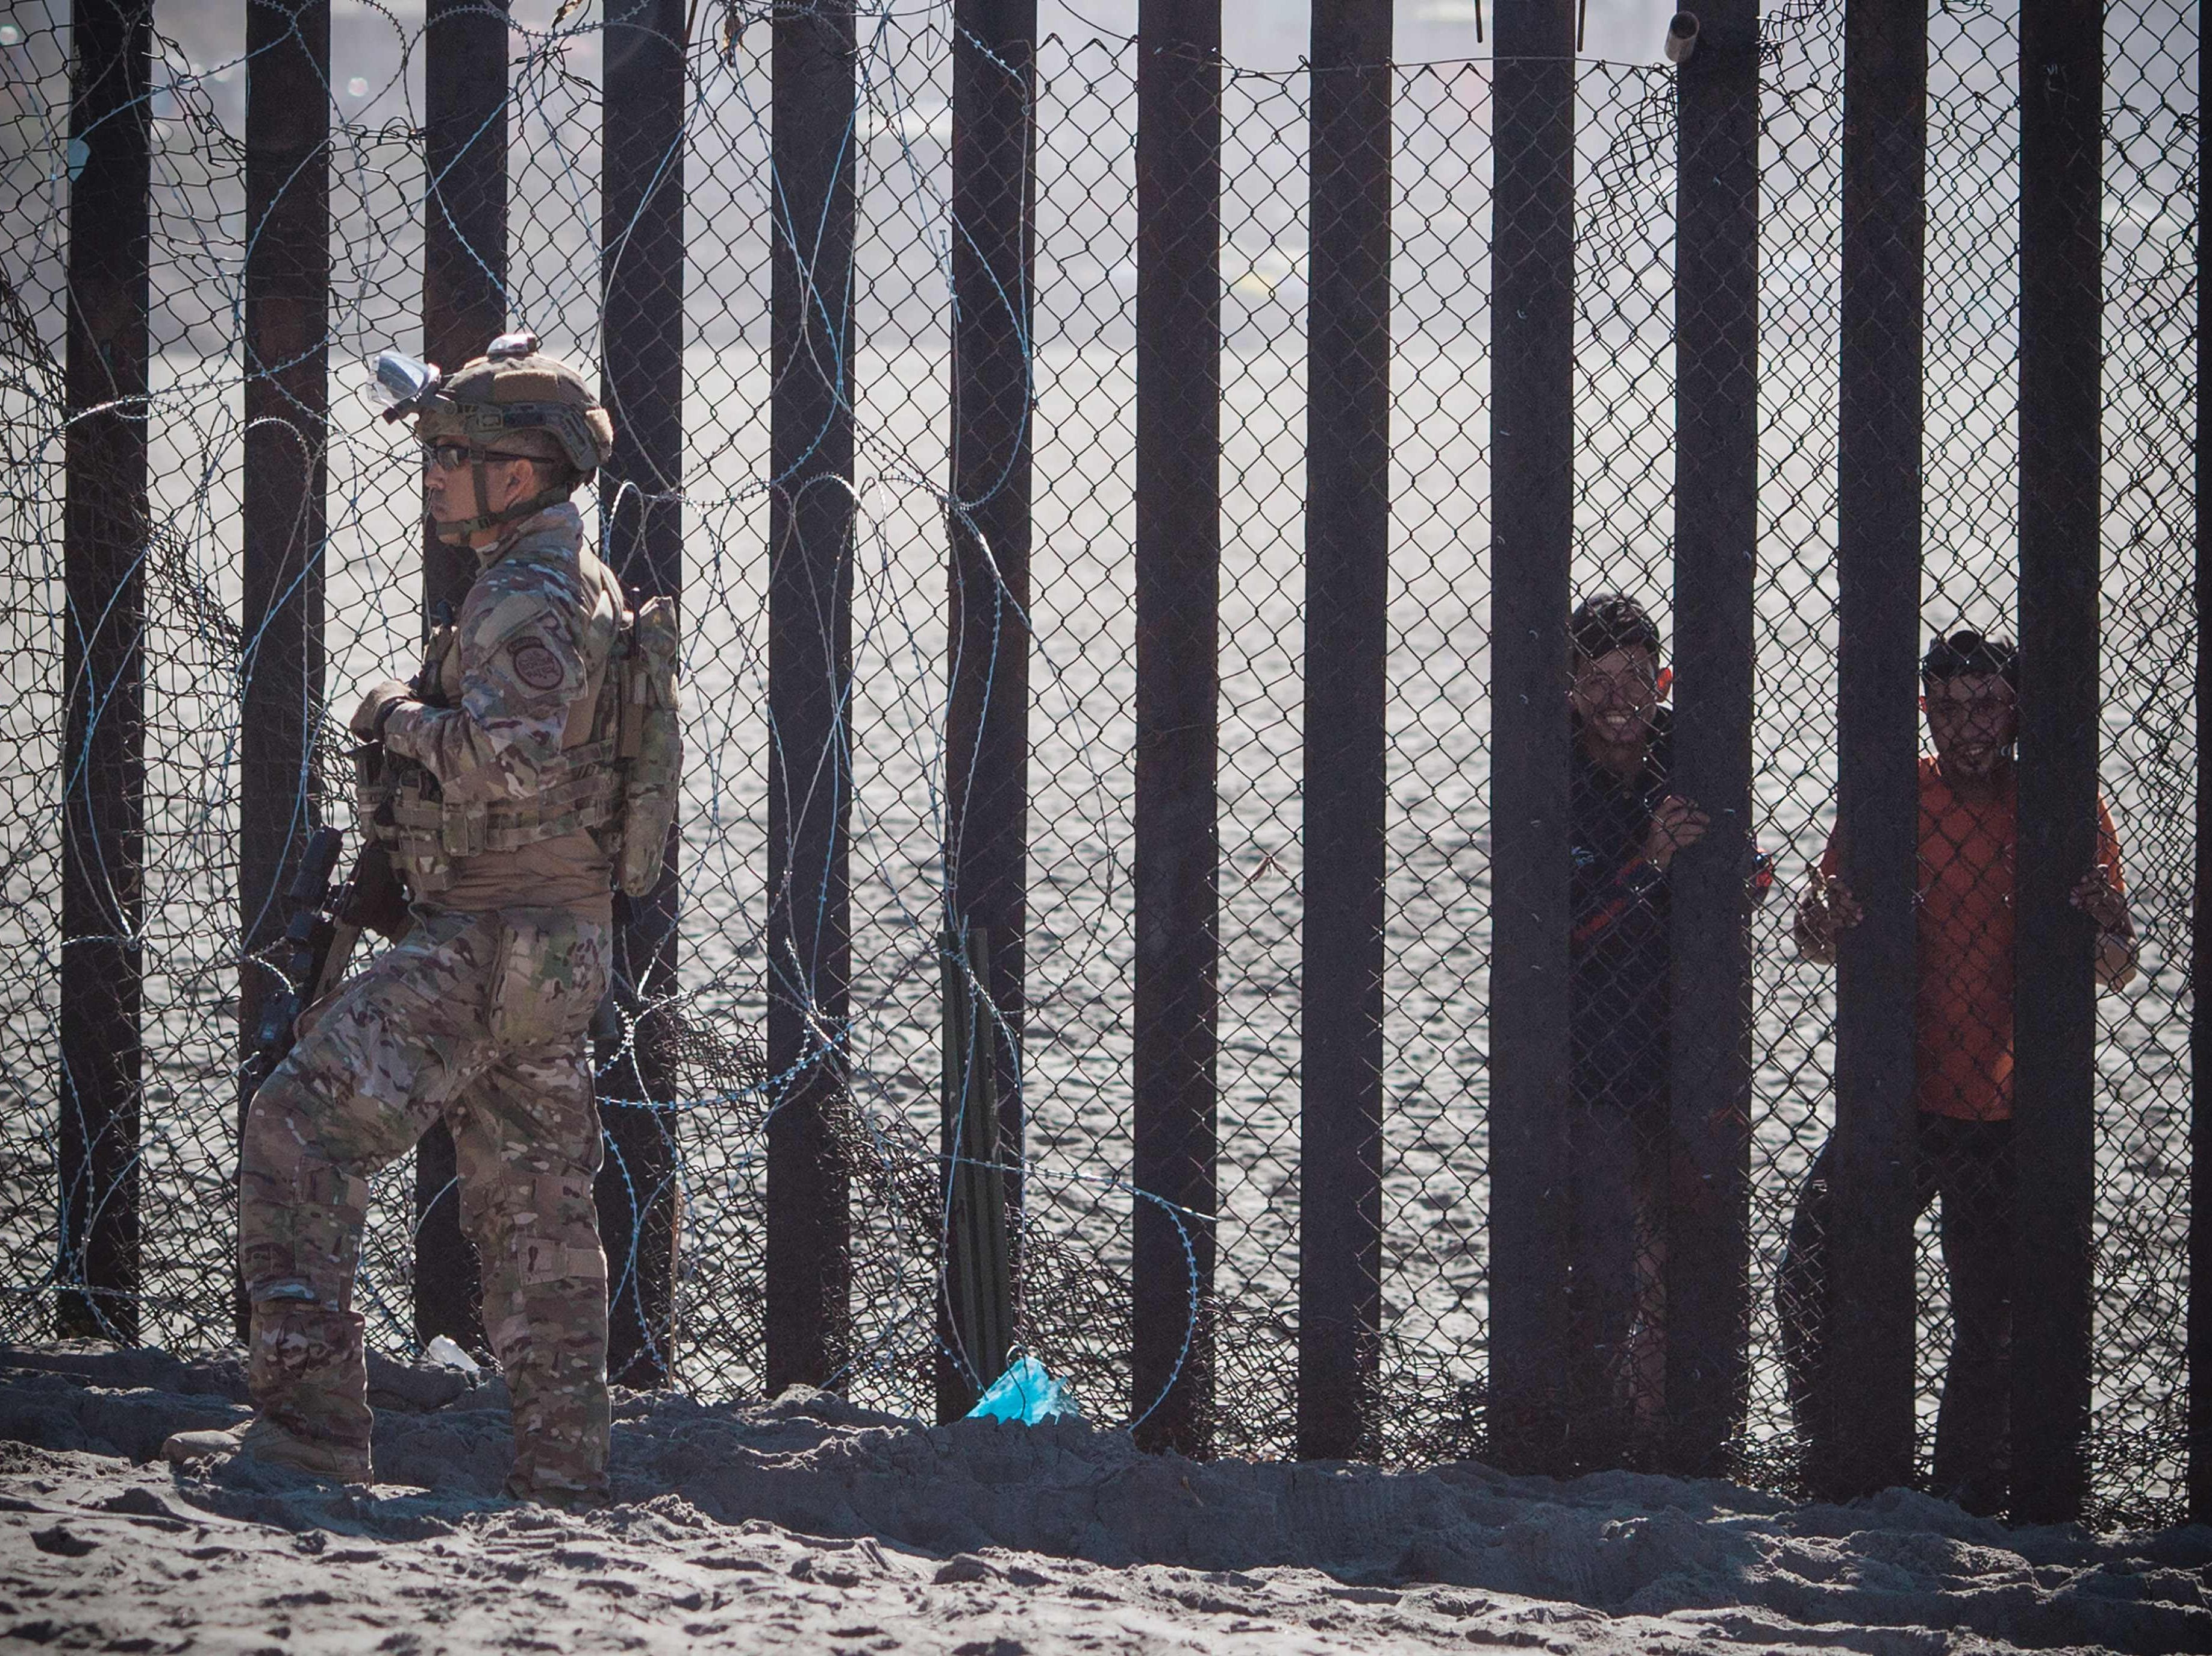 A member of the US military stands in front of the border fence that divides the US and Mexico at Friendship Park on Nov. 16, 2018 in San Diego, Calif.